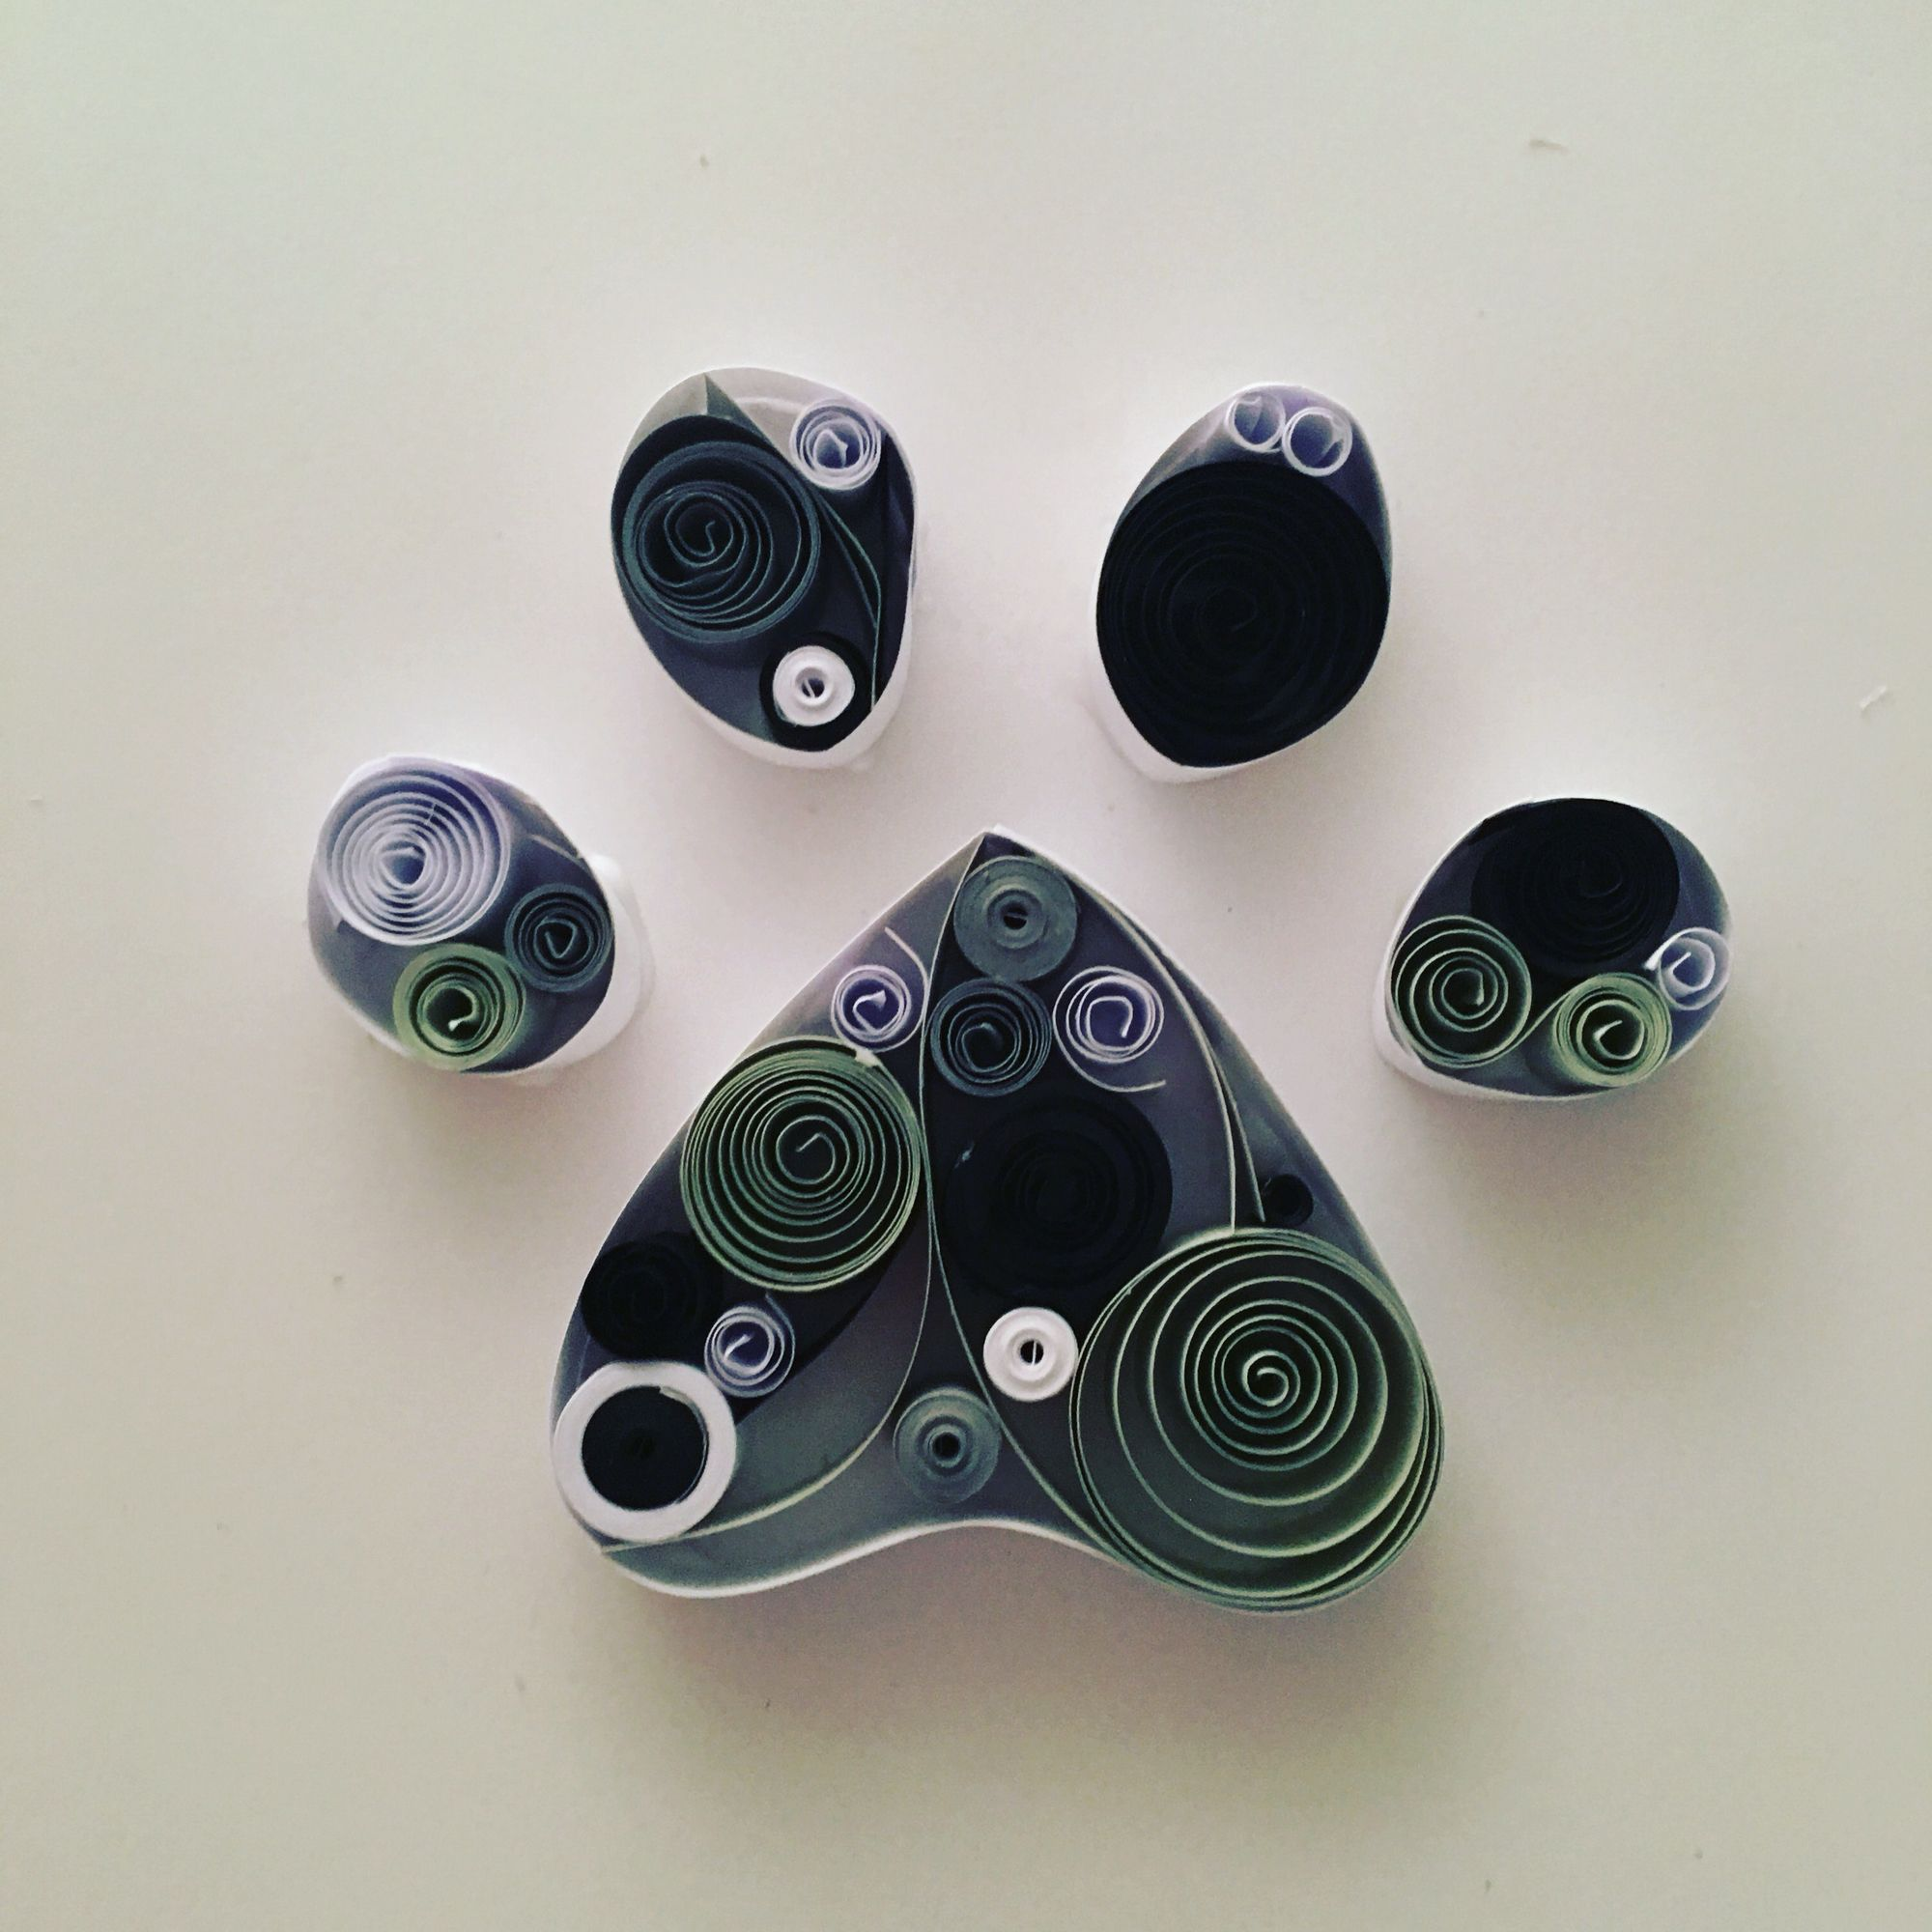 Paw print paper quilling art, perfect for gift or home